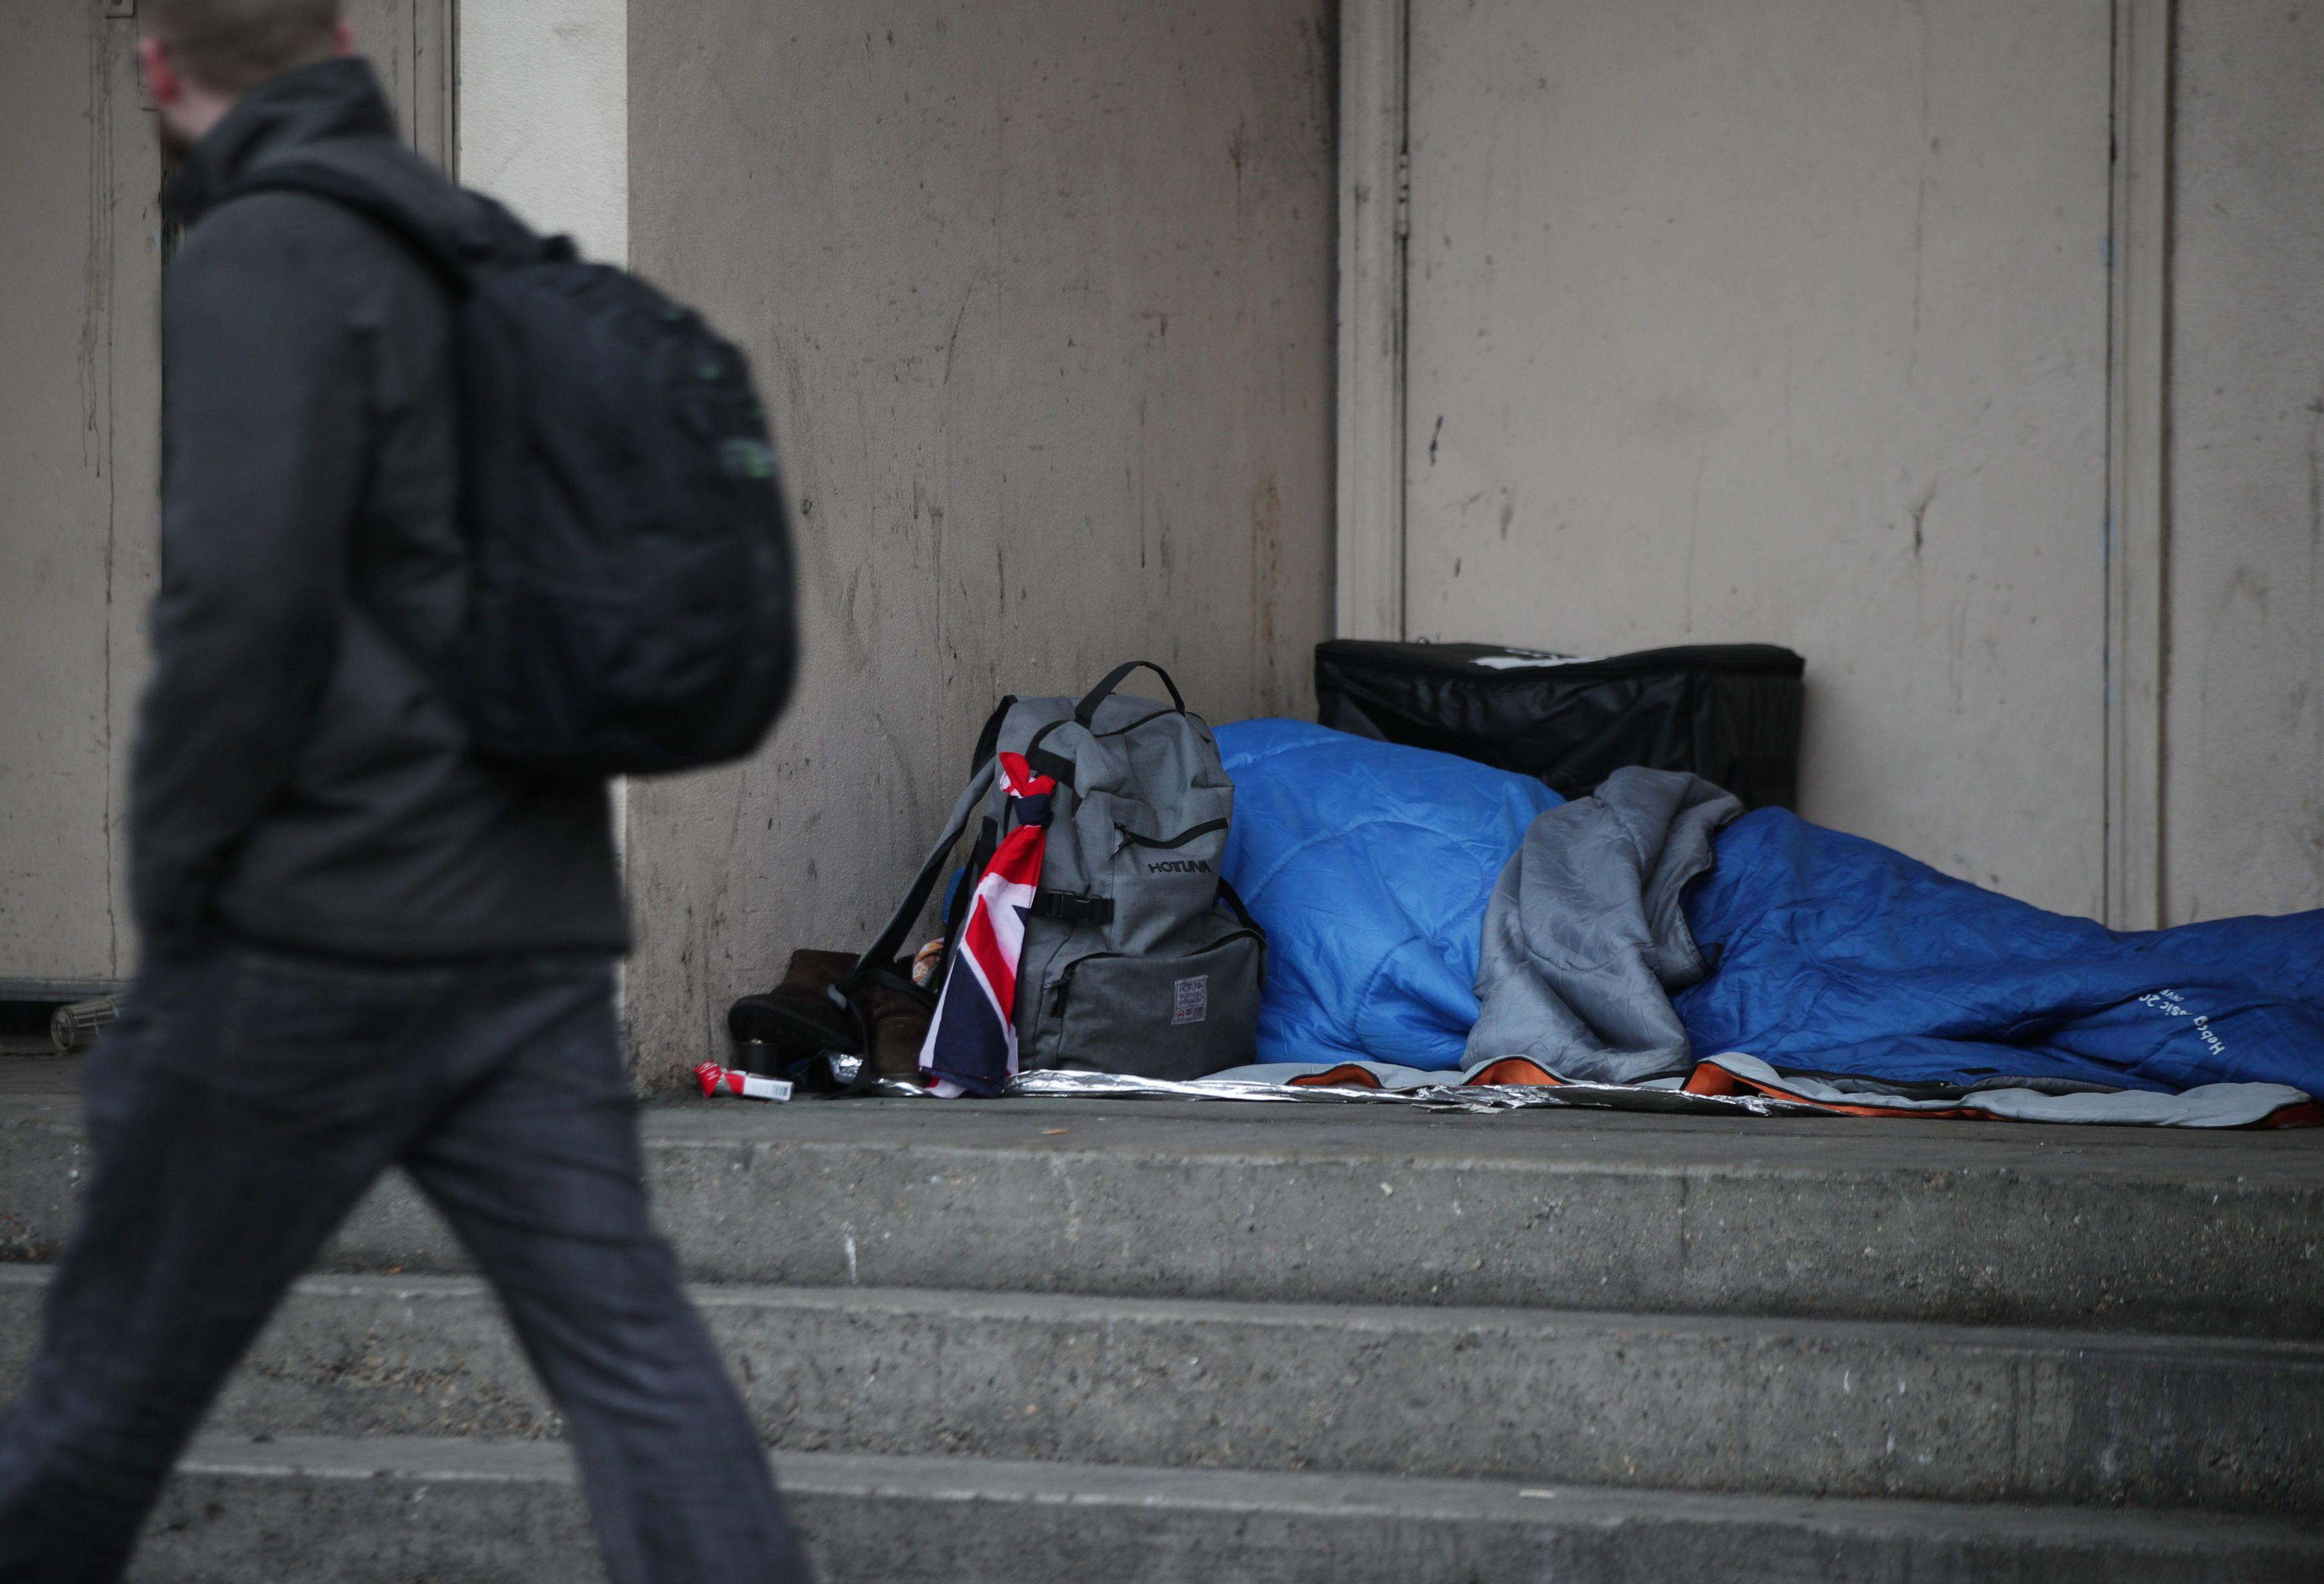 Rough Sleeping In England A 'Scandal' As Numbers Reach Highest On Record